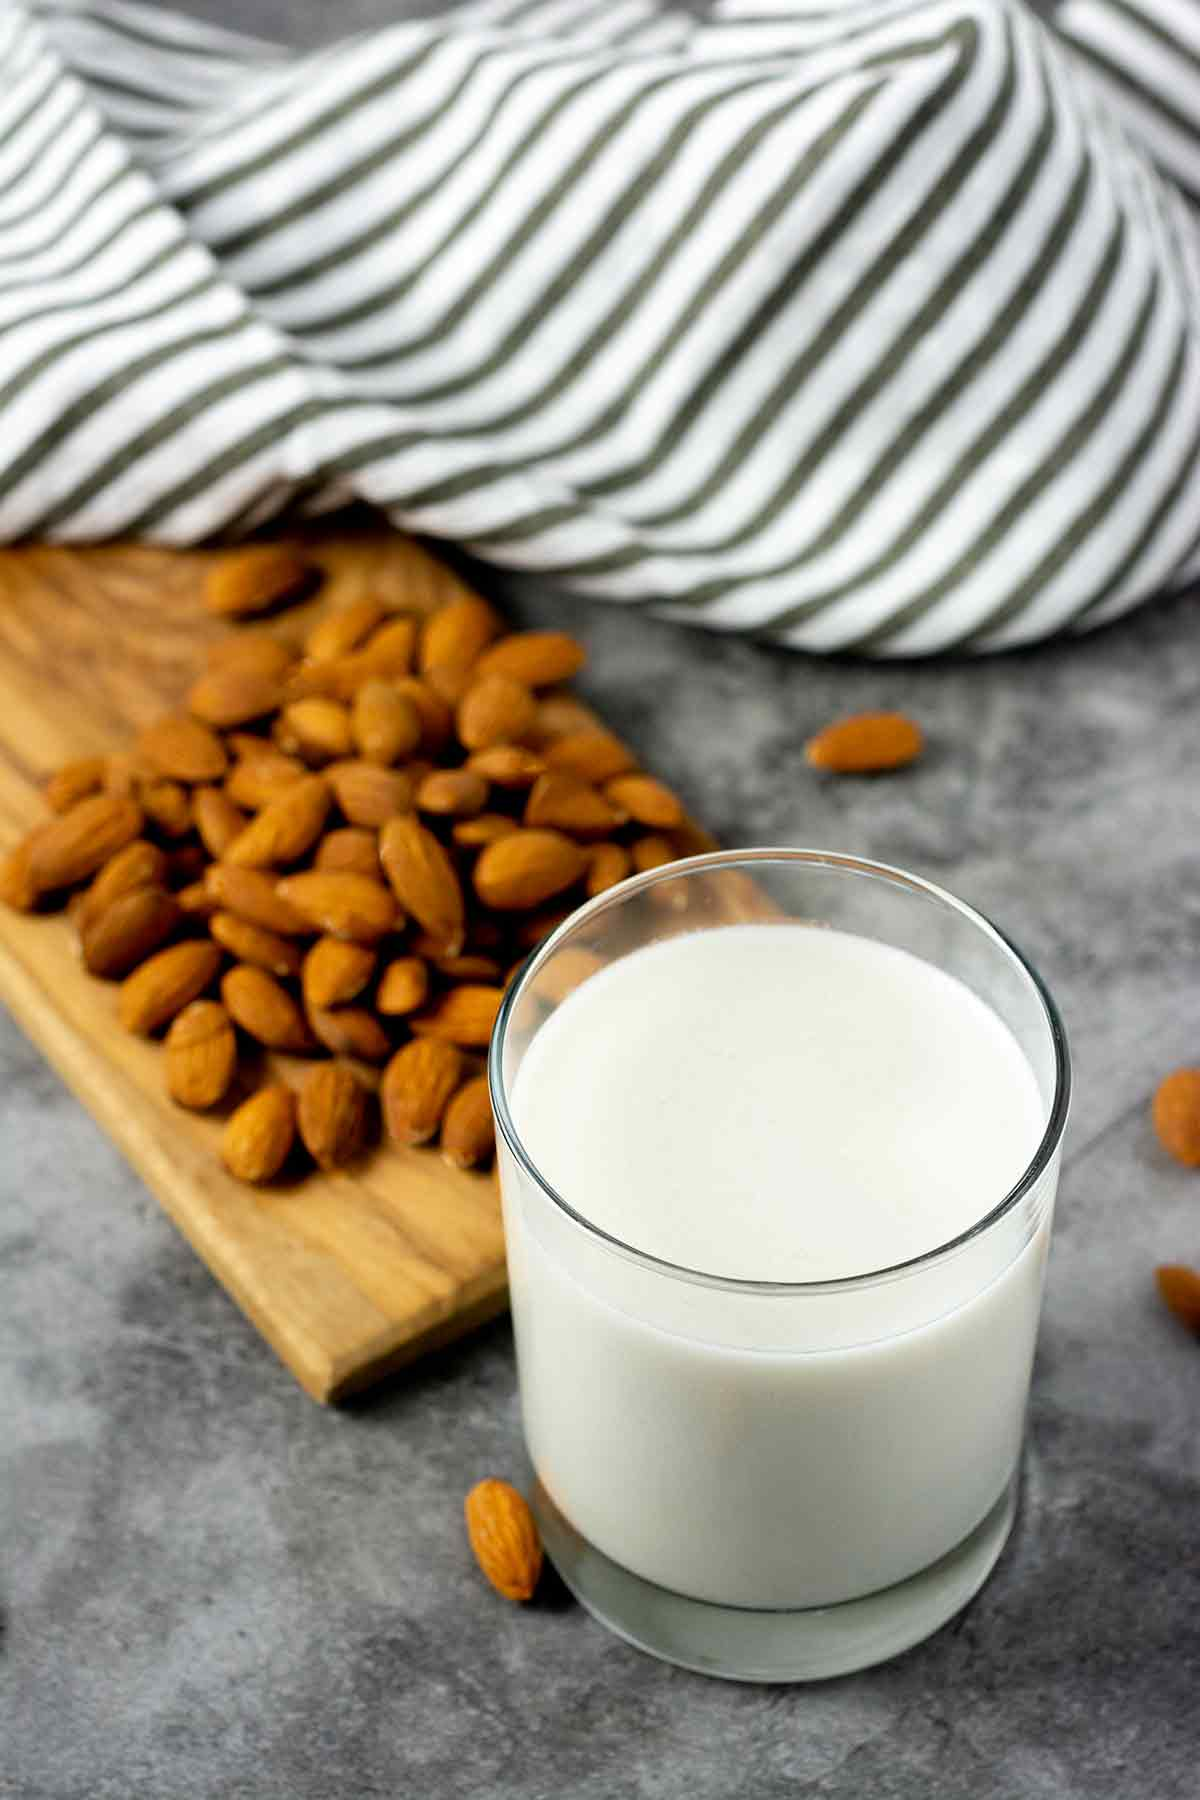 Overlay Almond milk in a glass jar with almonds on a cutting board in the background